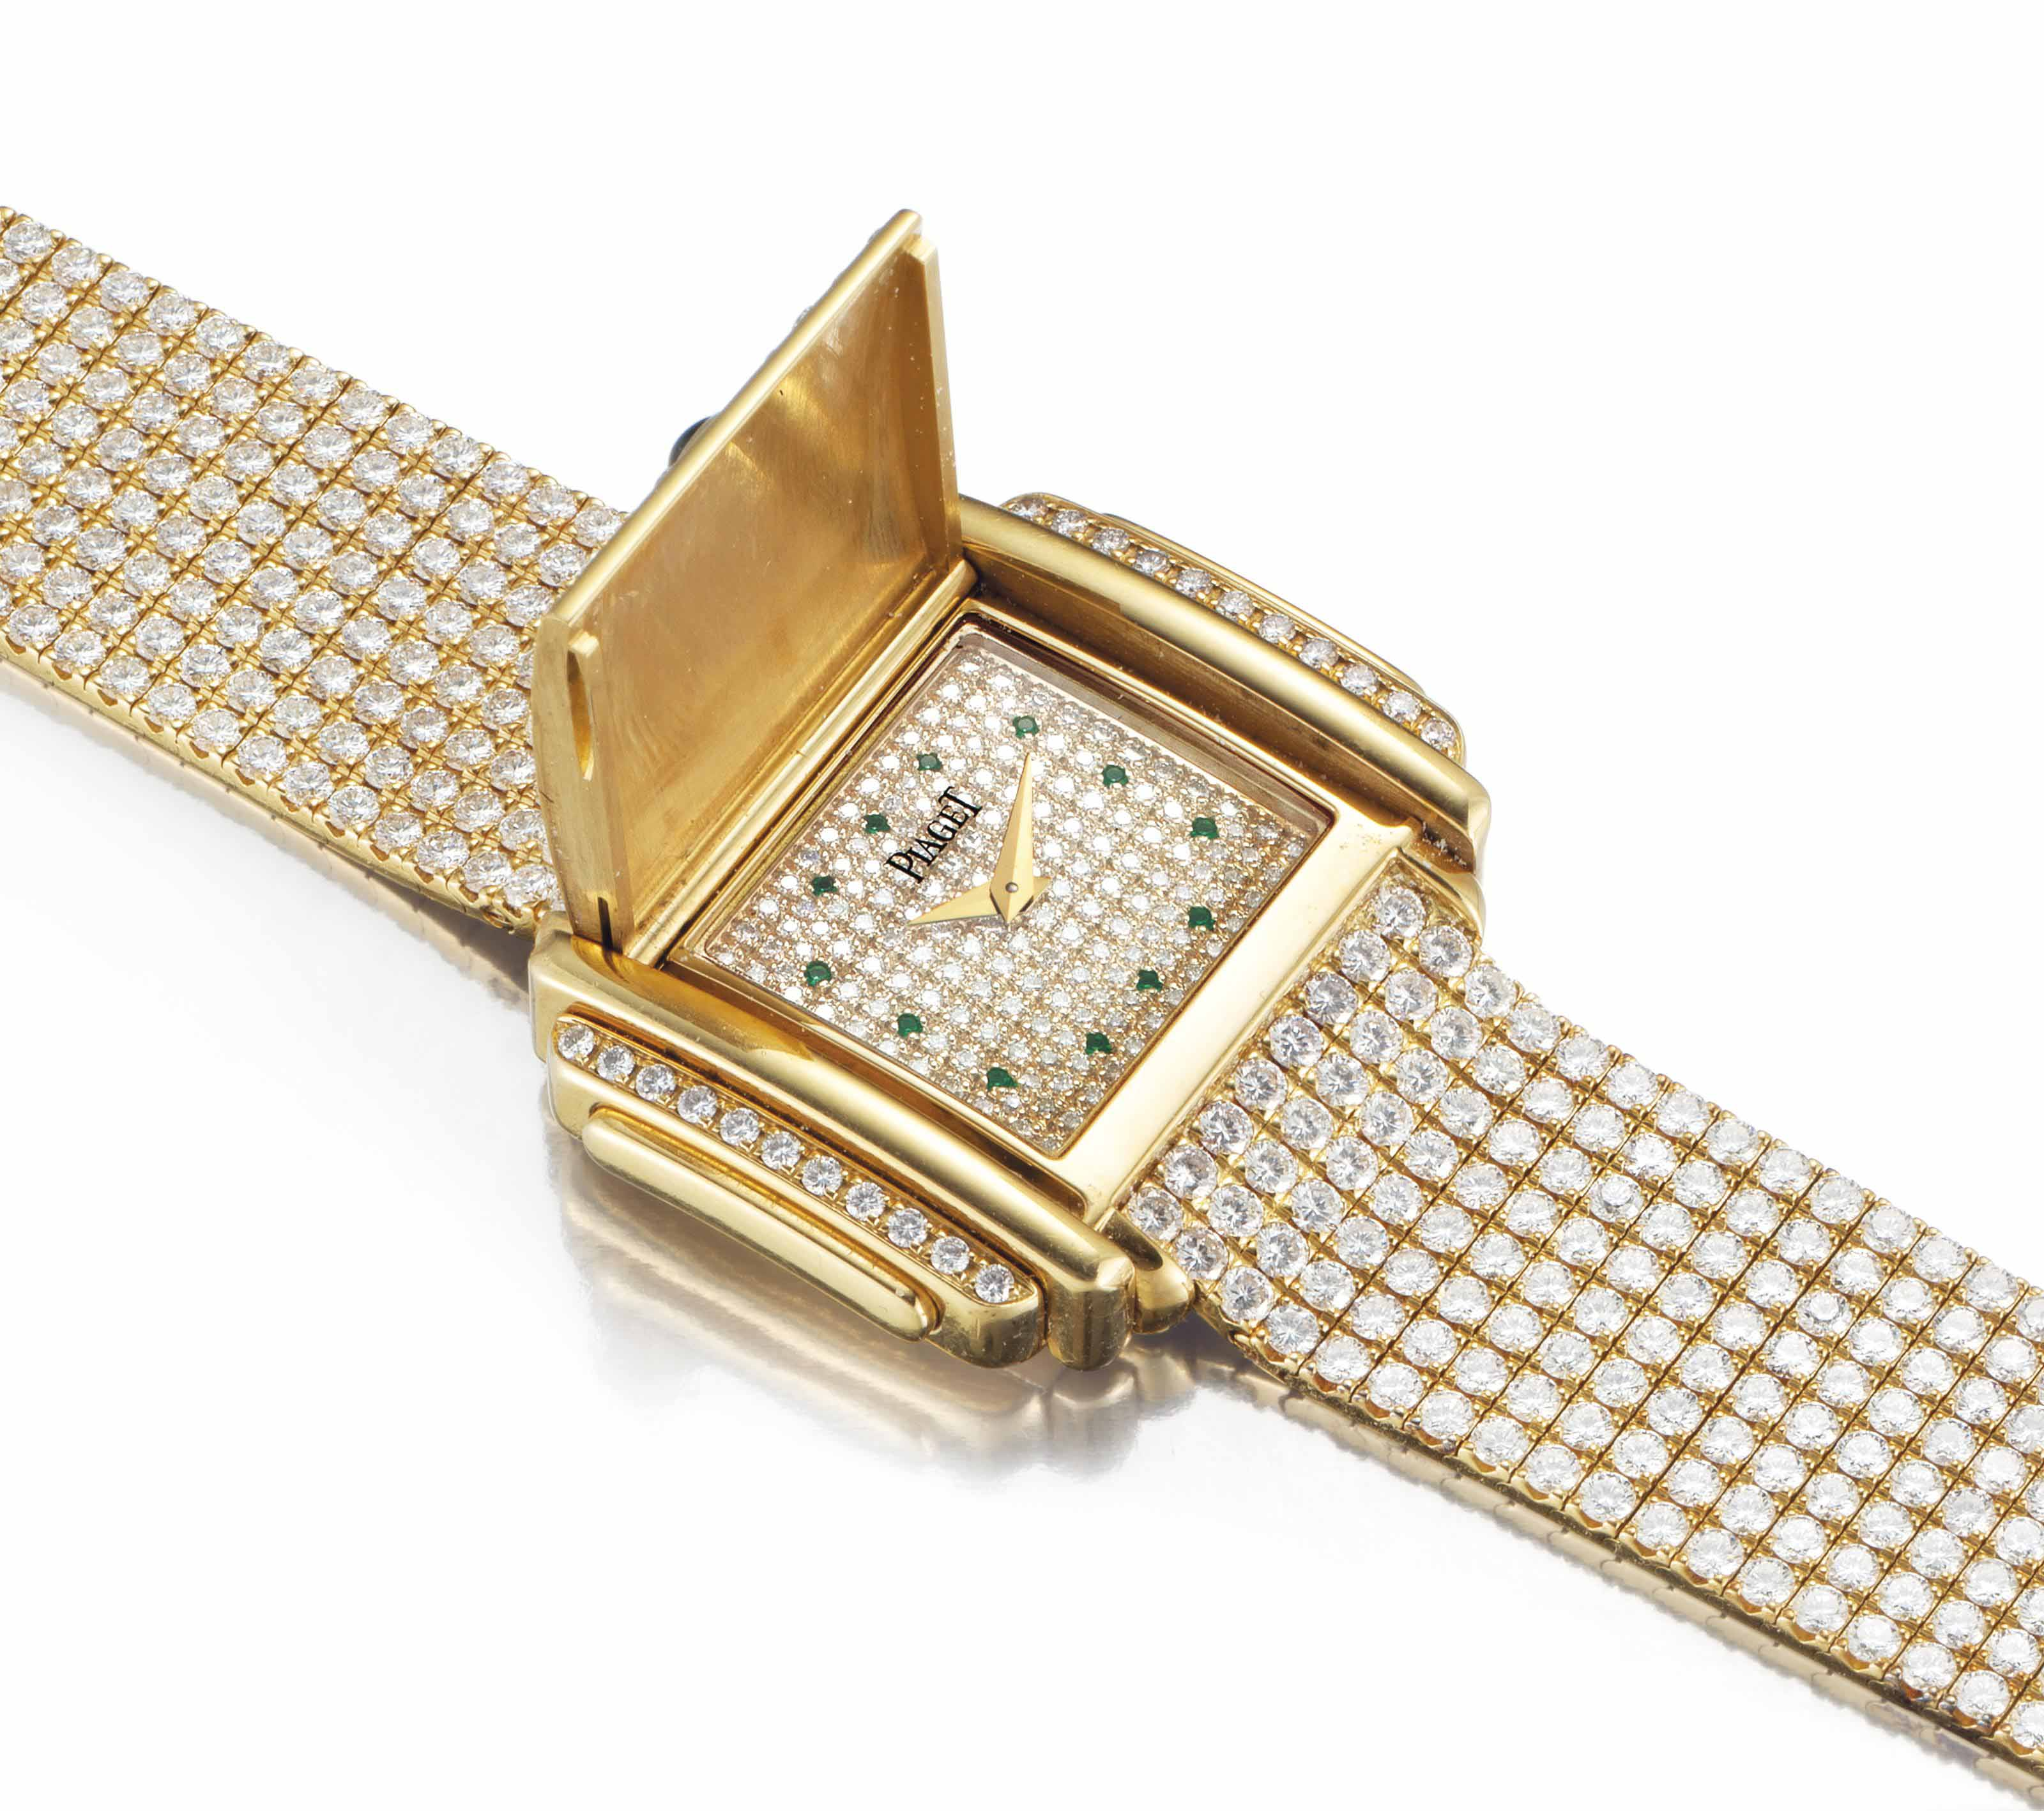 Piaget. A Lady's Fine and Rare 18k Gold, Diamond, and Emerald-Set Bracelet Watch with Concealed Dial